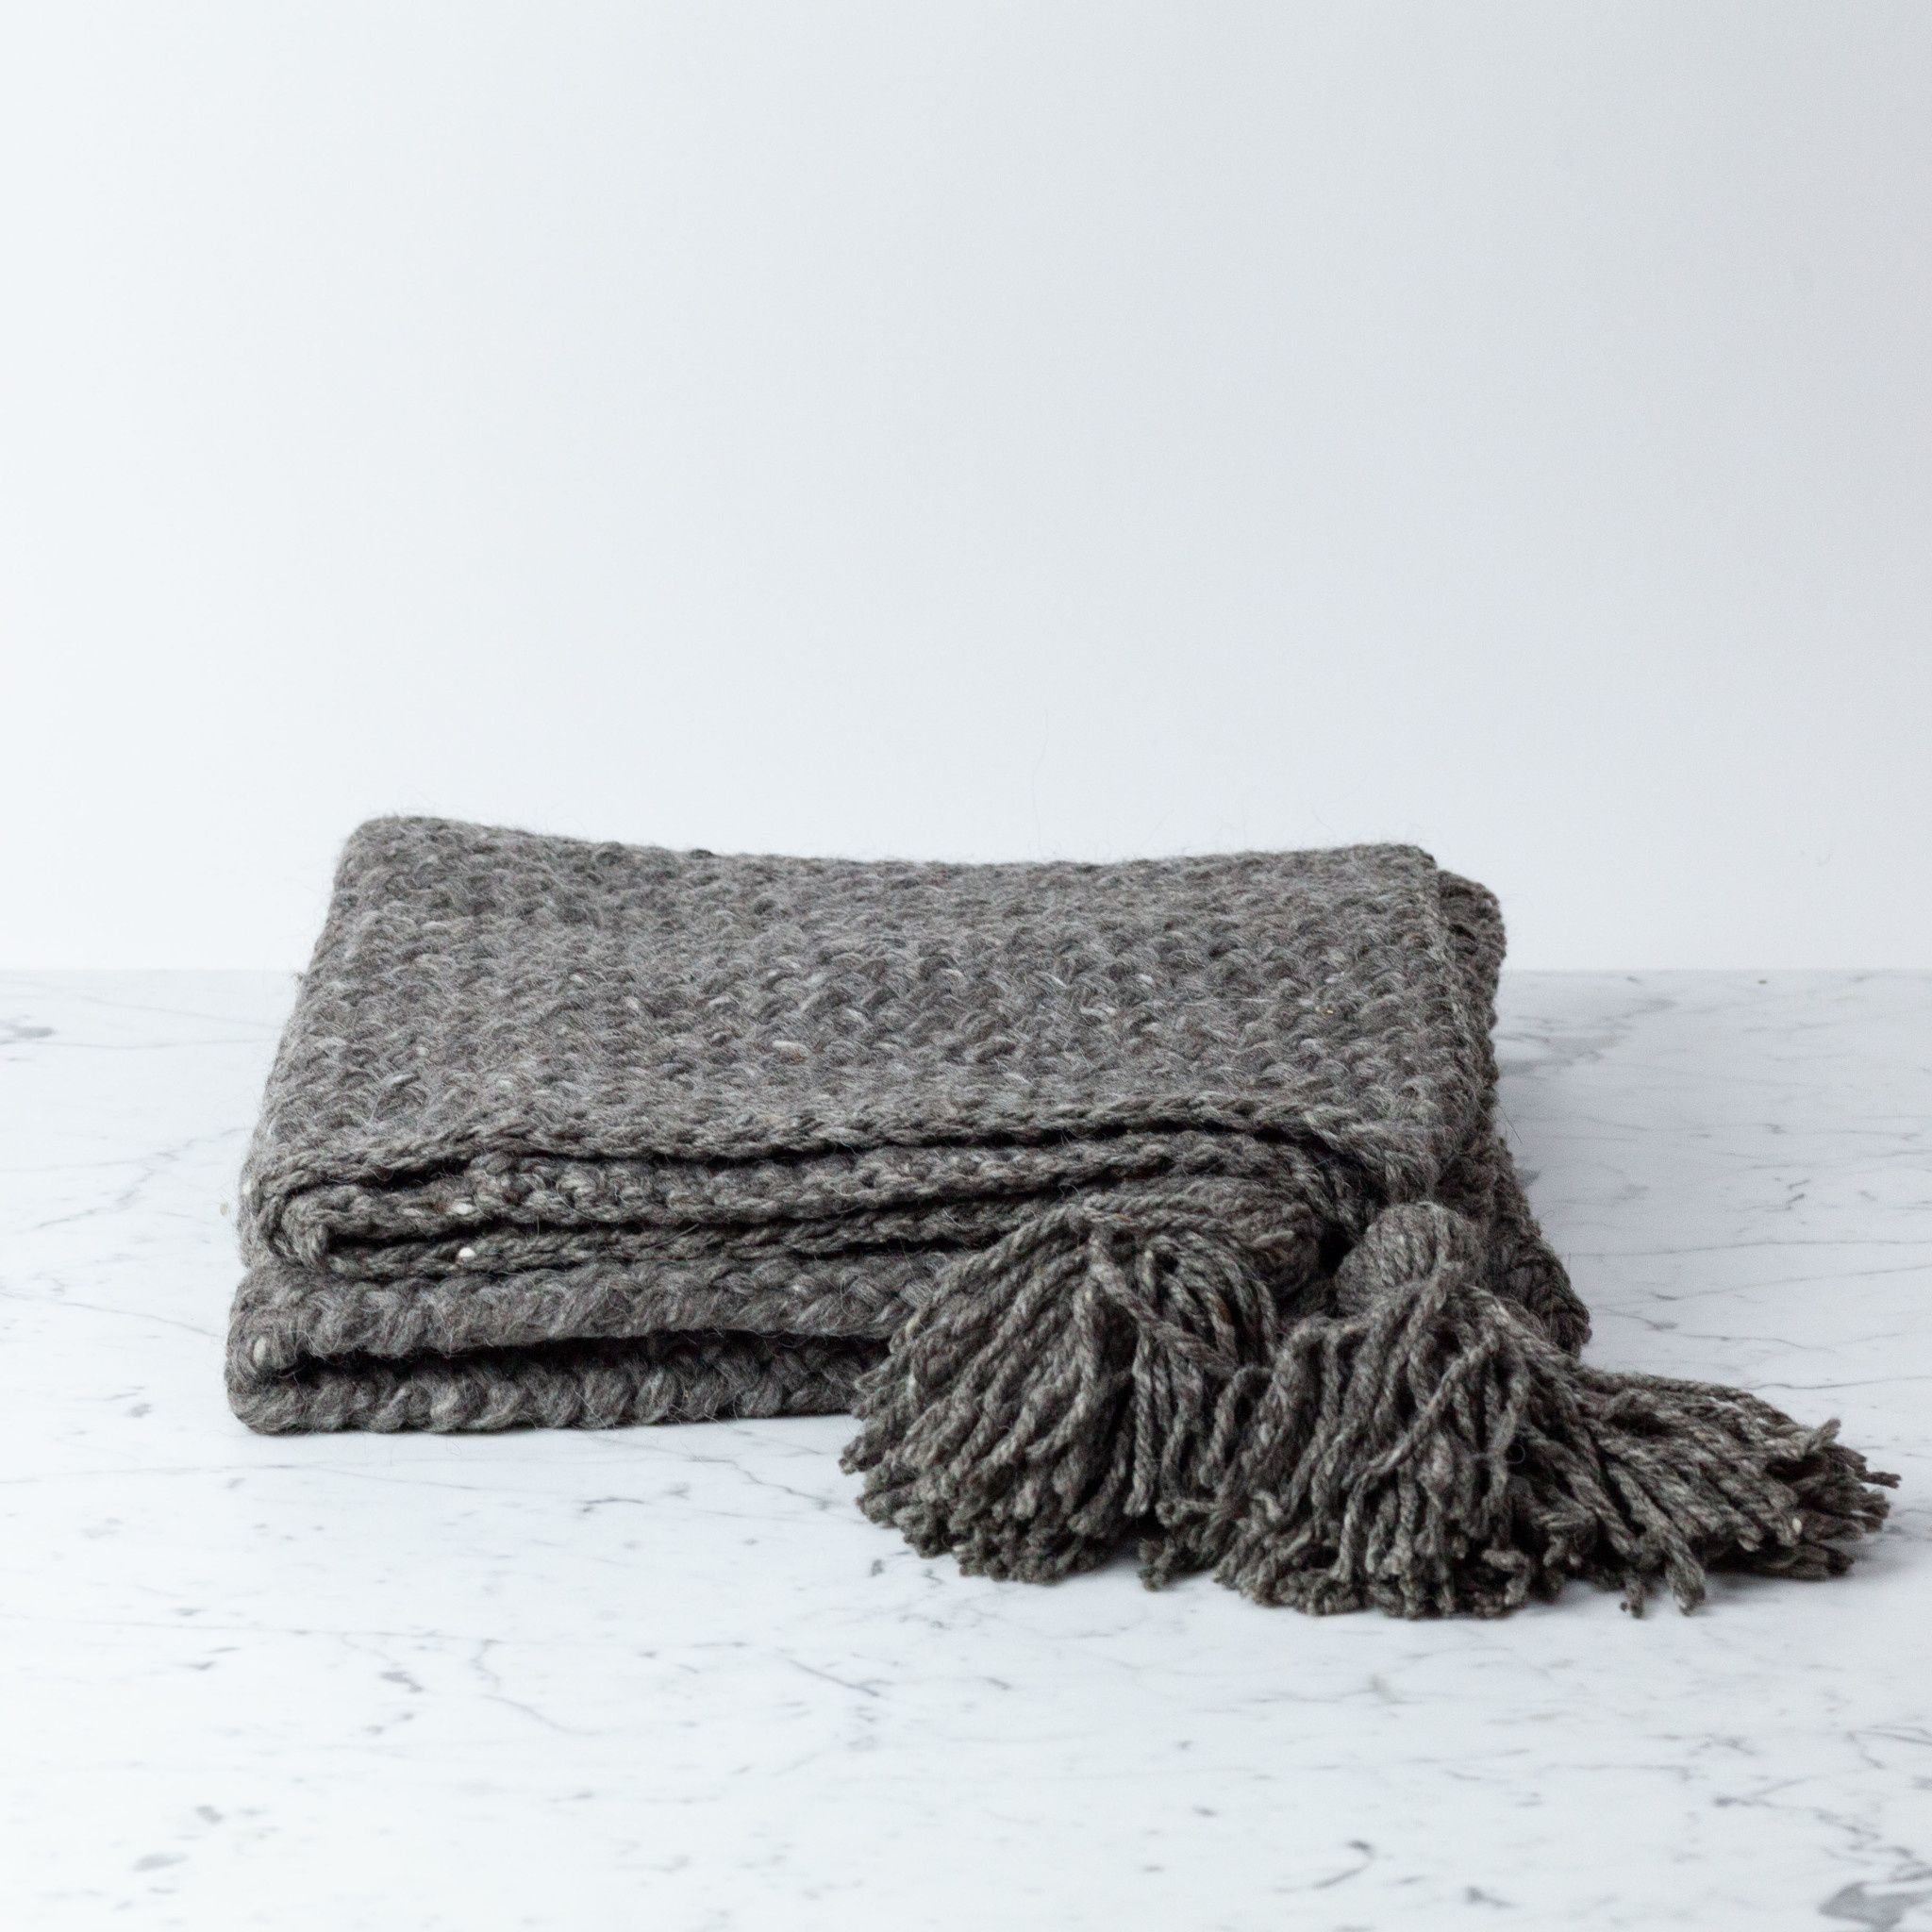 Handwoven Bayo Throw - Naturally Dyed Wool with Tassels - Grey - Small - 3 x 6'